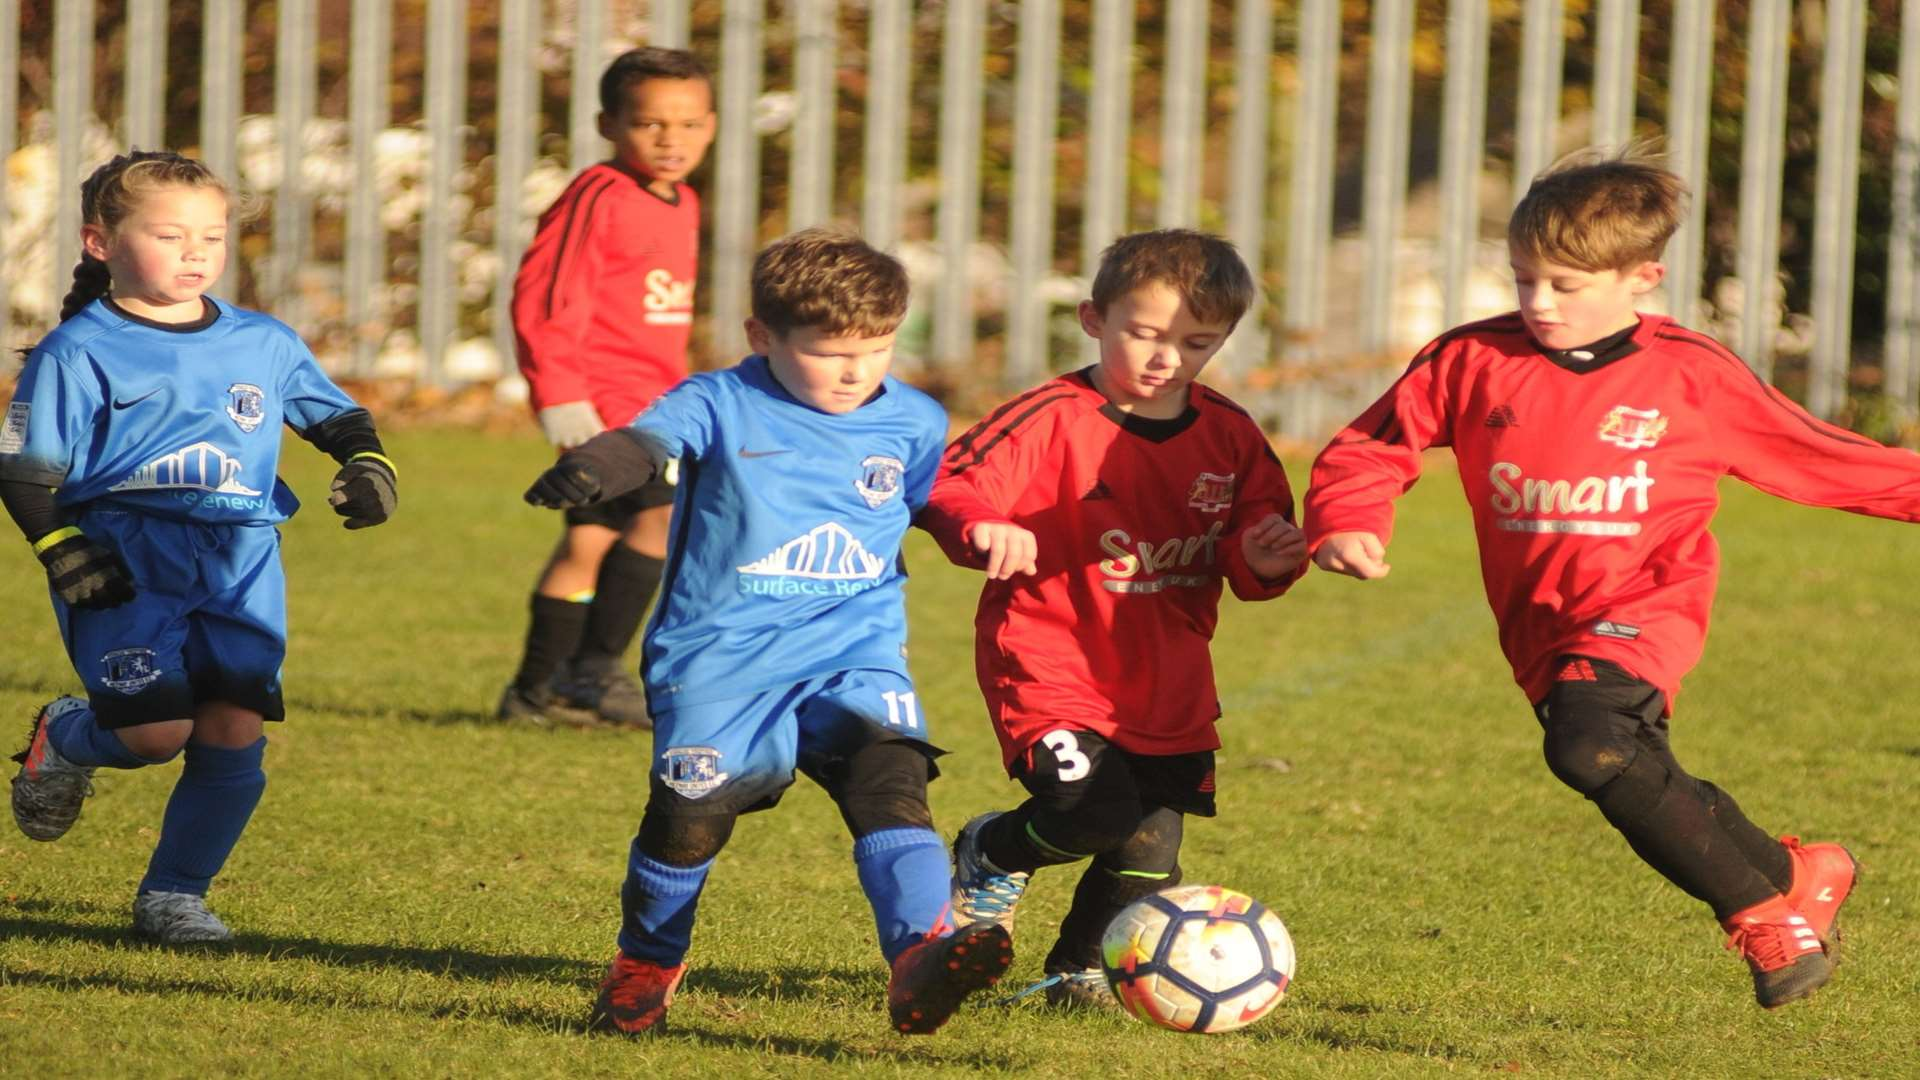 Medway United East under-7s and Woodcoombe Youth under-7s get stuck in Picture: Steve Crispe